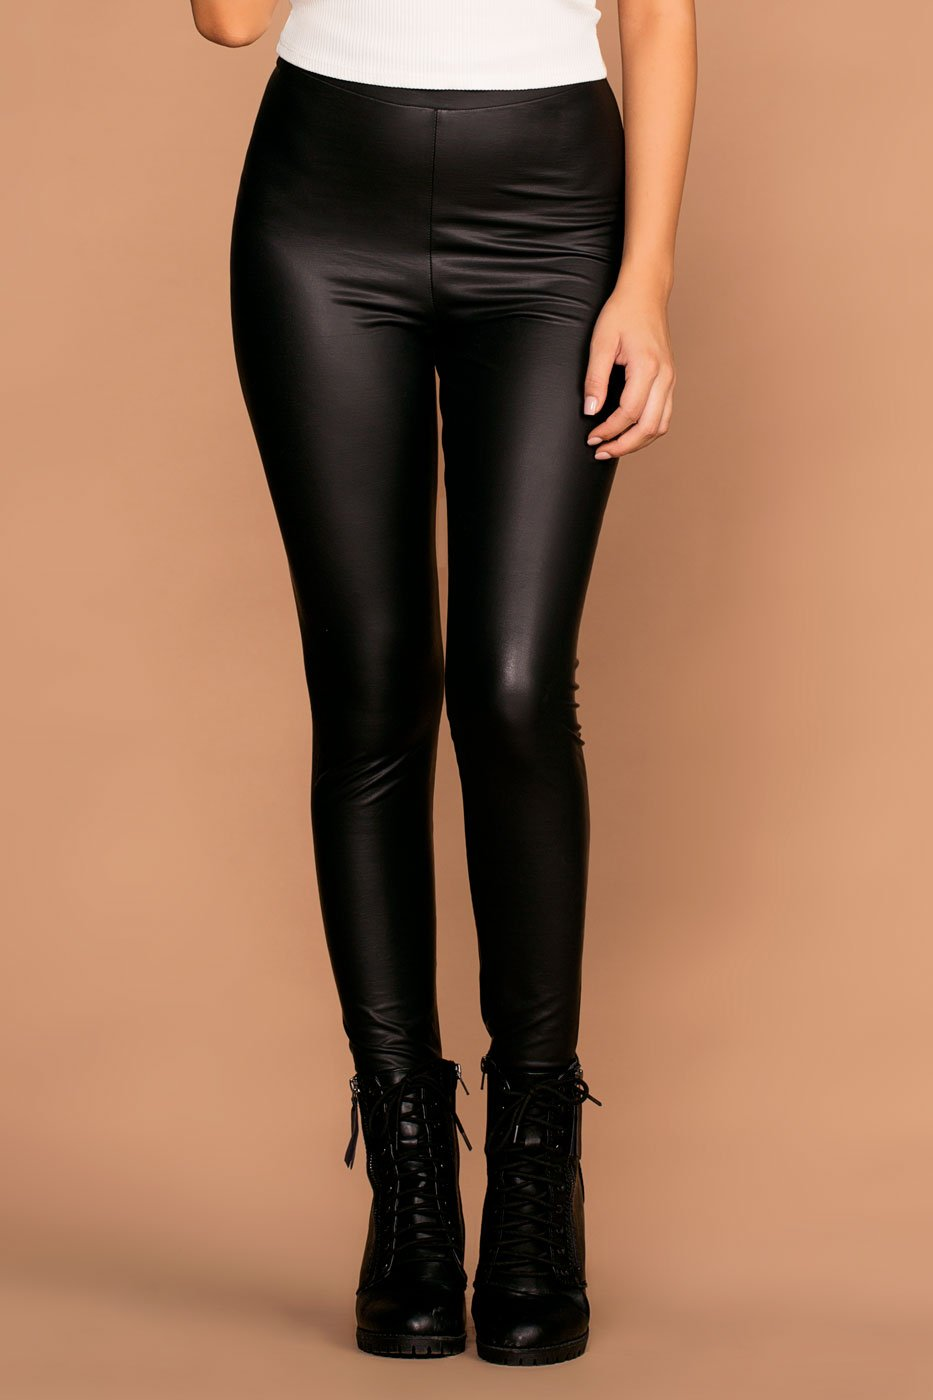 Leggings - Panther Black Vegan Leather Leggings